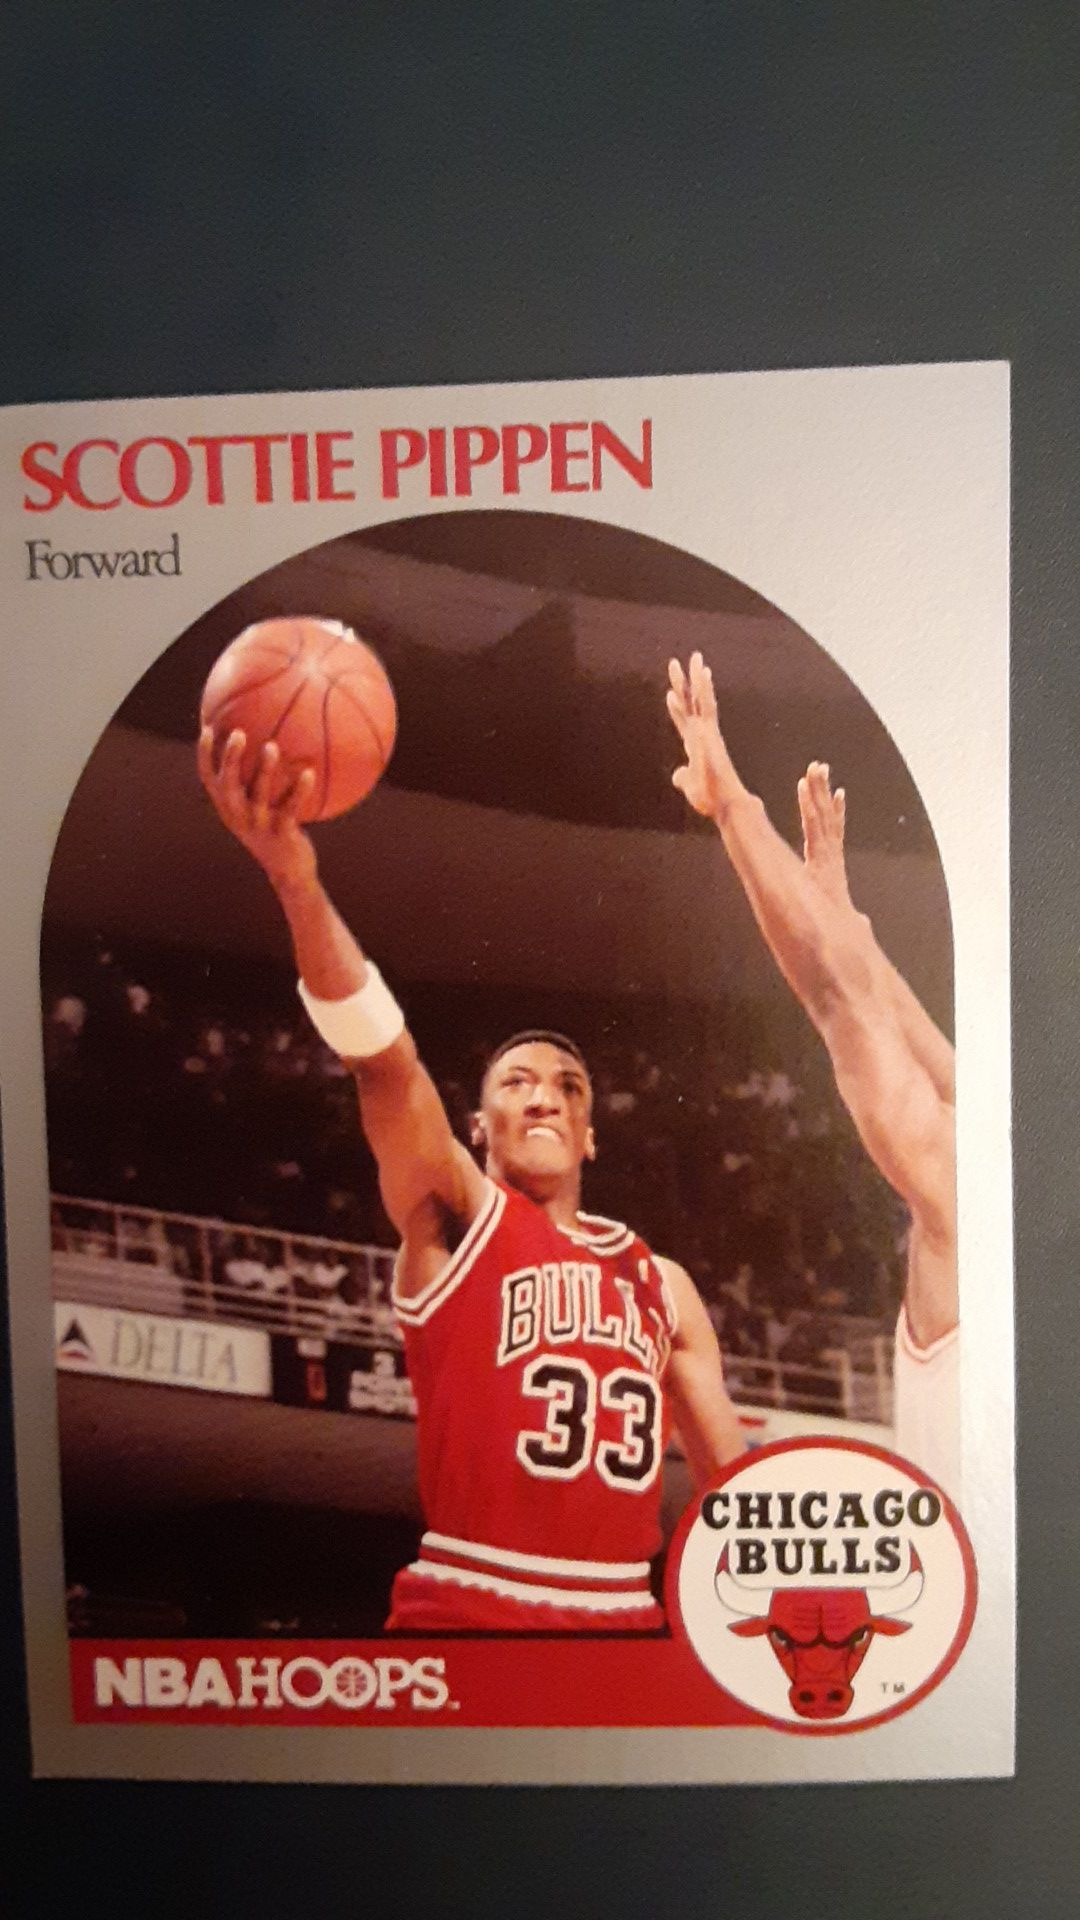 Pippen card